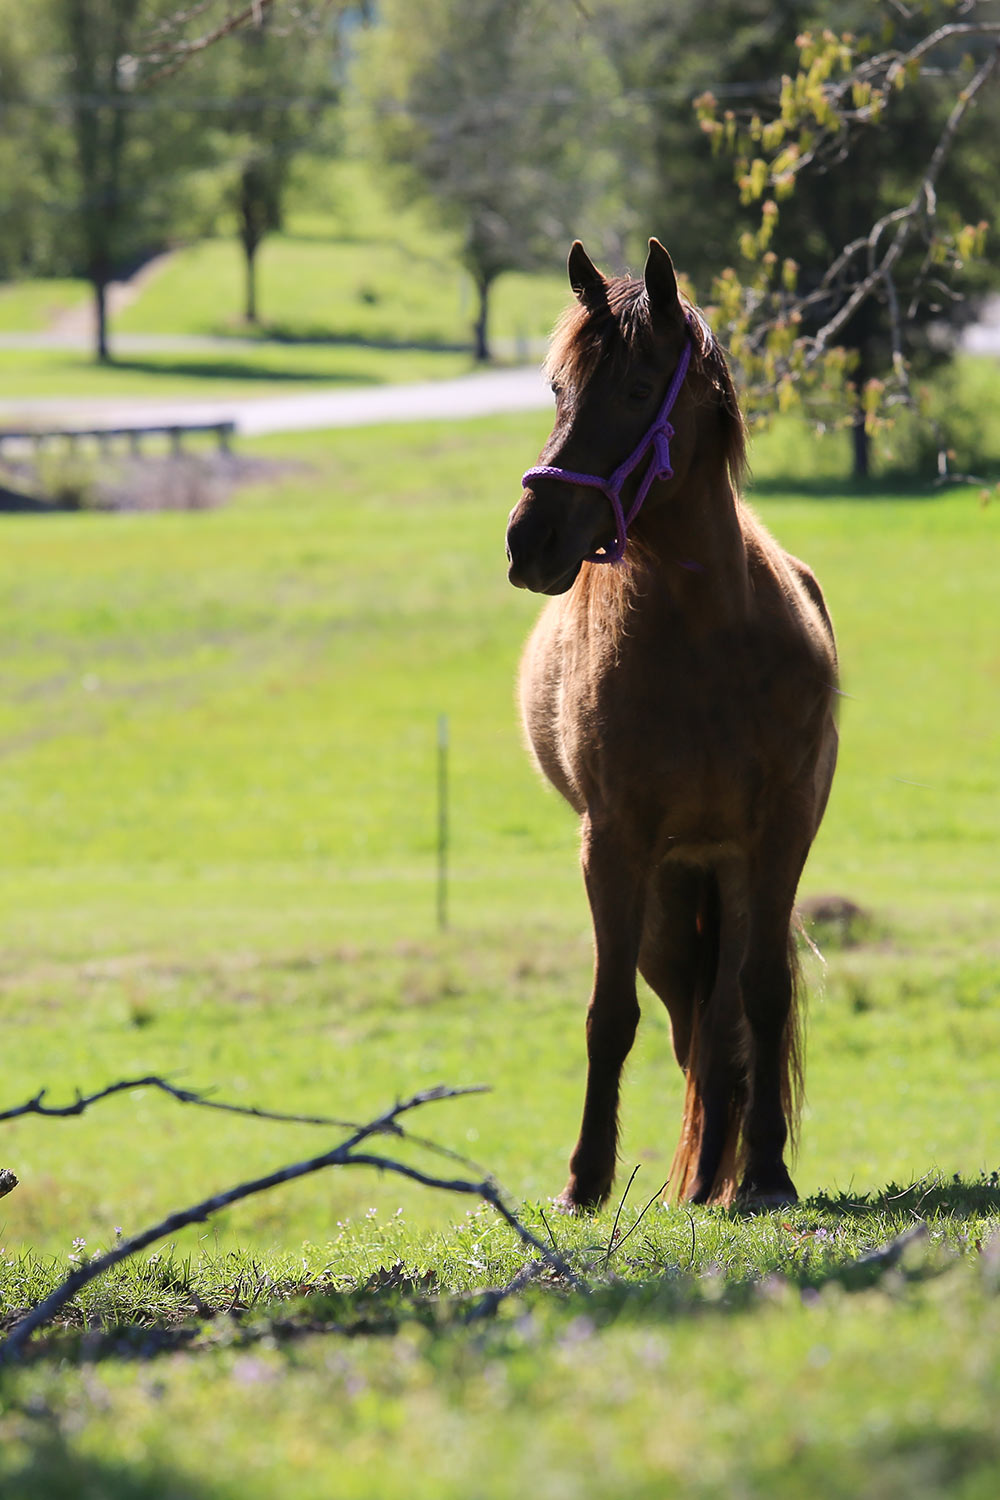 Horse Retirement Farms - Retired Horse in Pasture